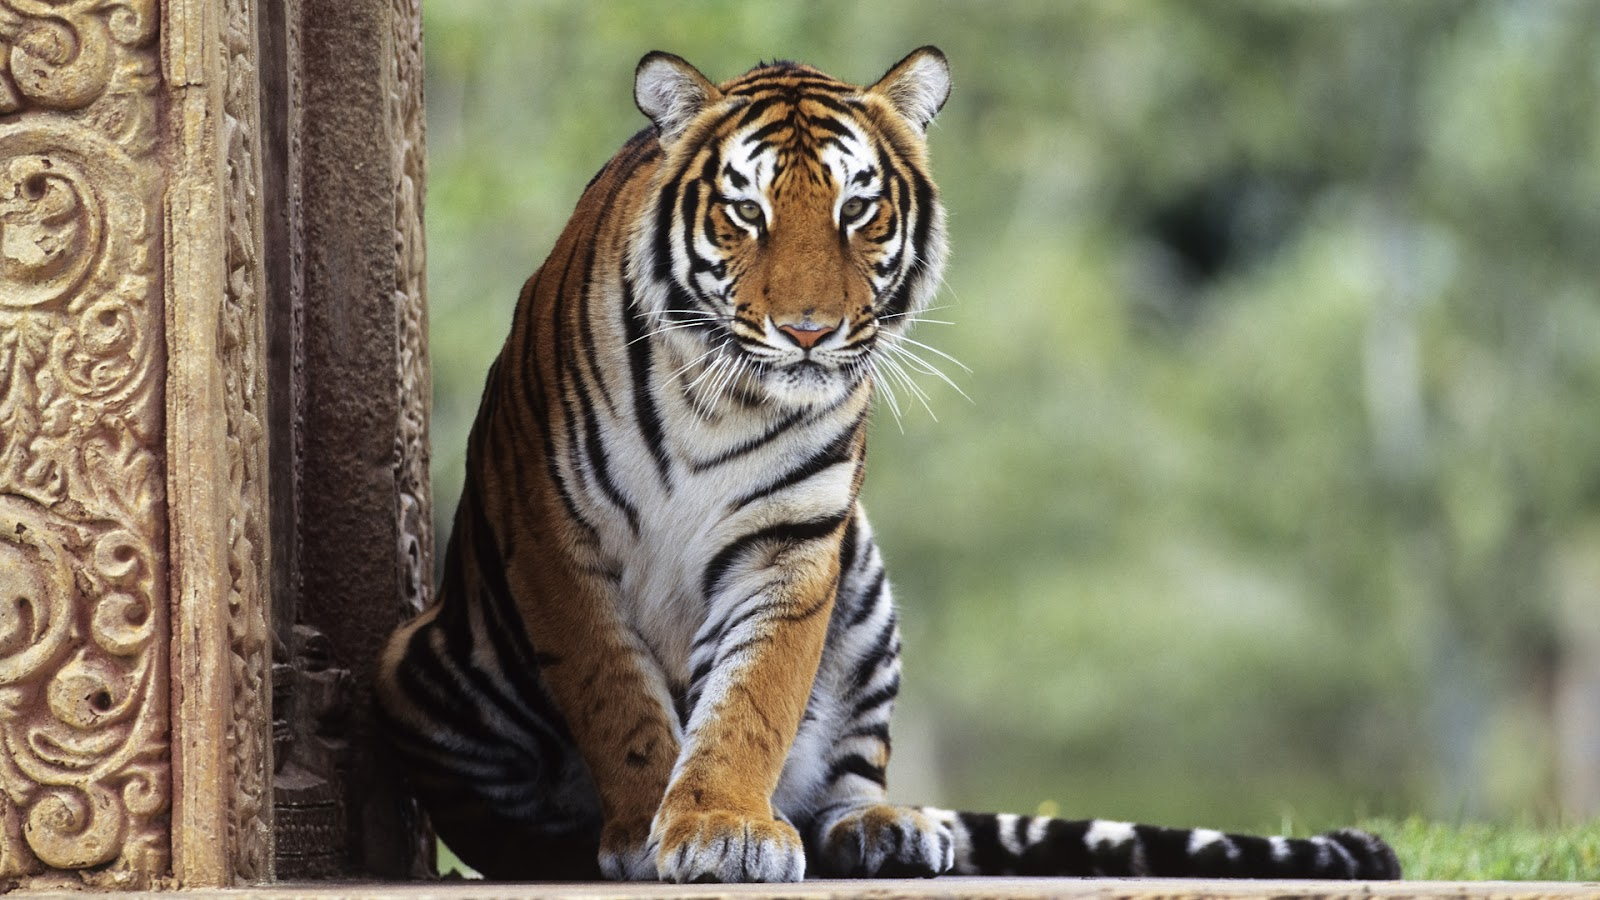 1001places: amazing animals - wallpapers full hd